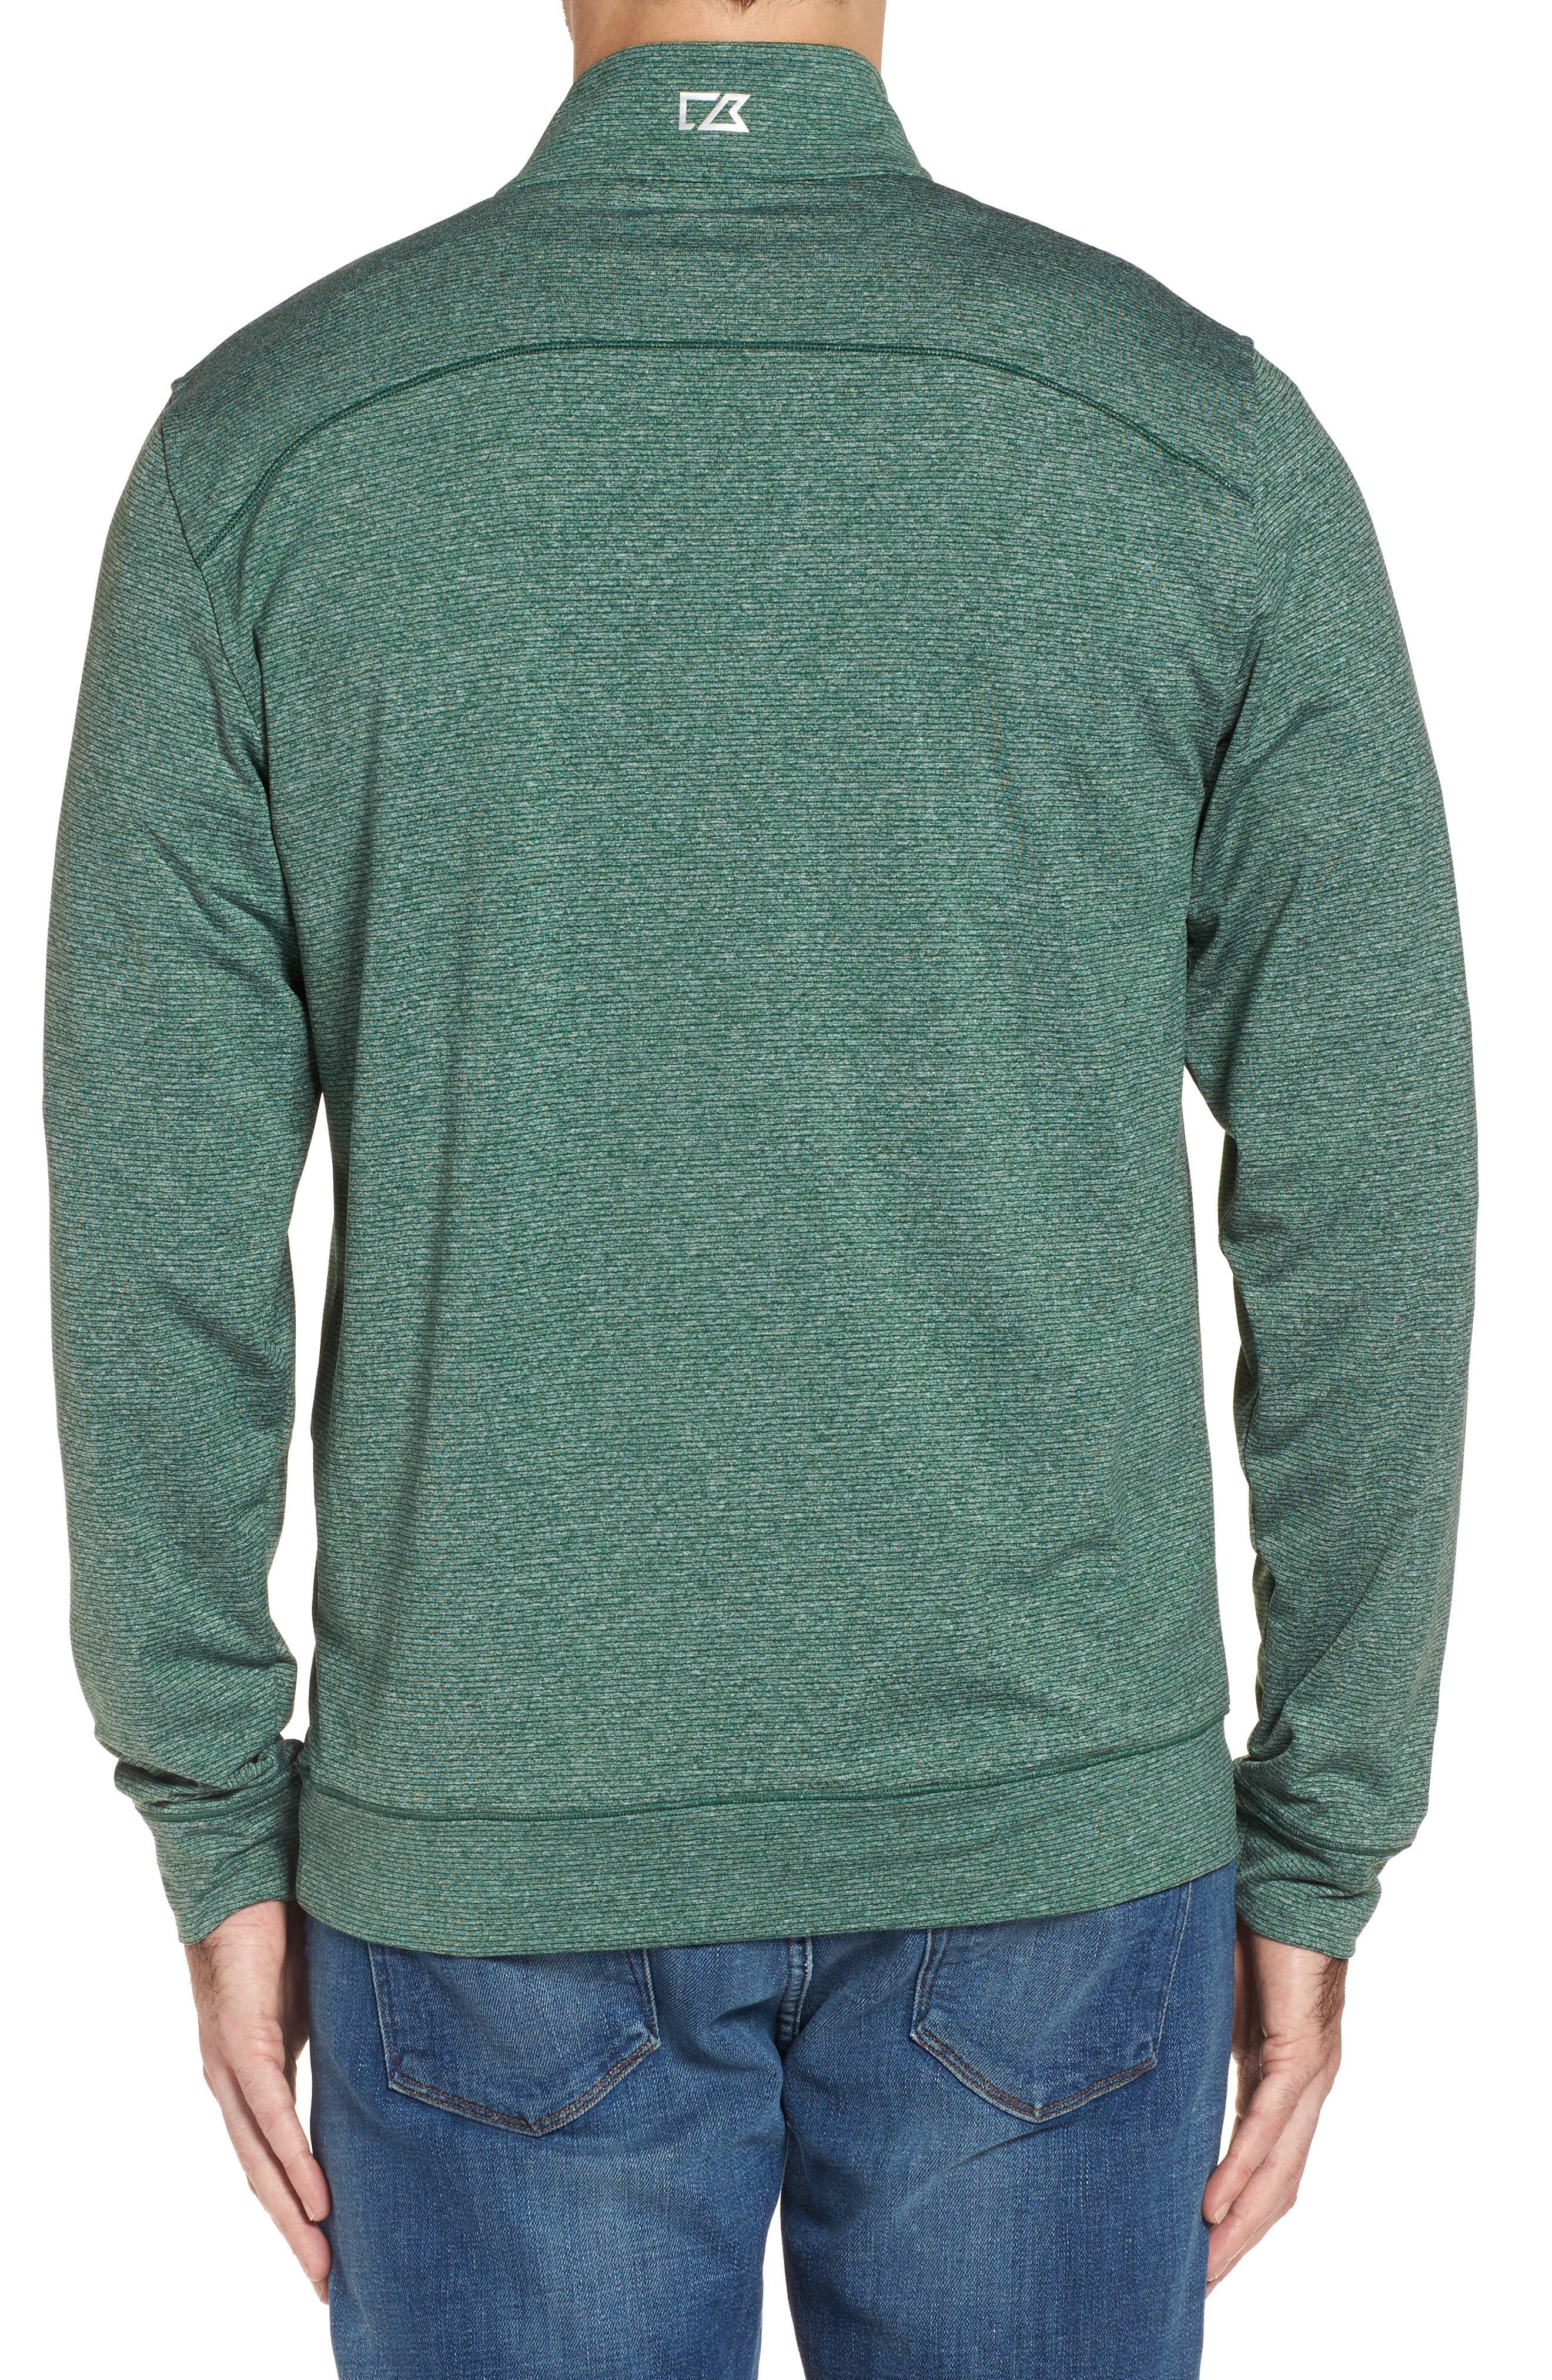 Shoreline - Green Bay Packers Half Zip Pullover,                             Alternate thumbnail 2, color,                             Hunter Heather